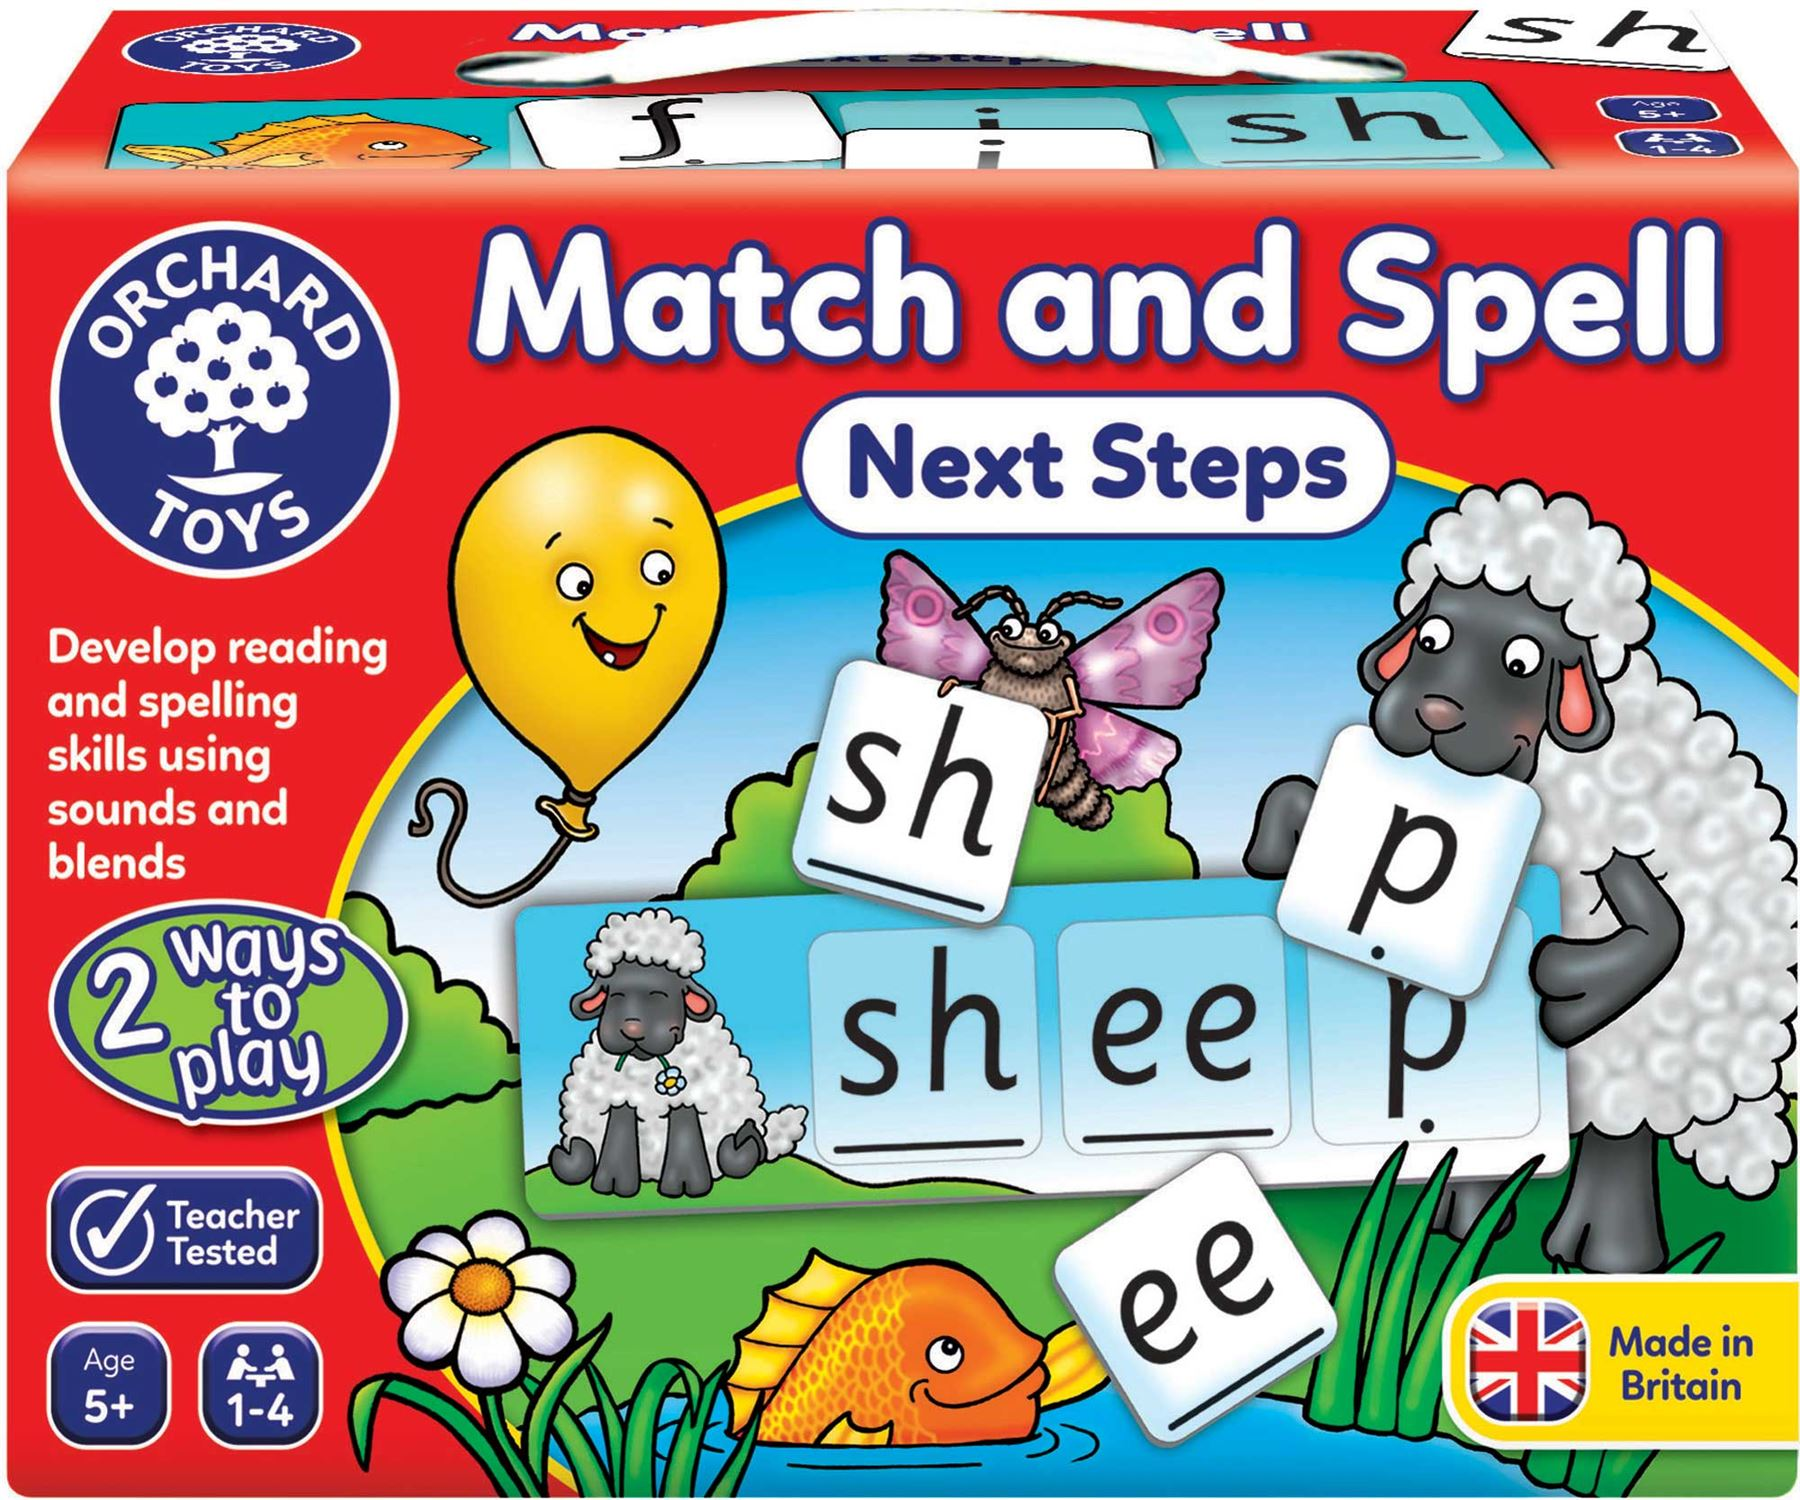 Orchard Toys MATCH & SPELL NEXT STEPS Educational Game ...